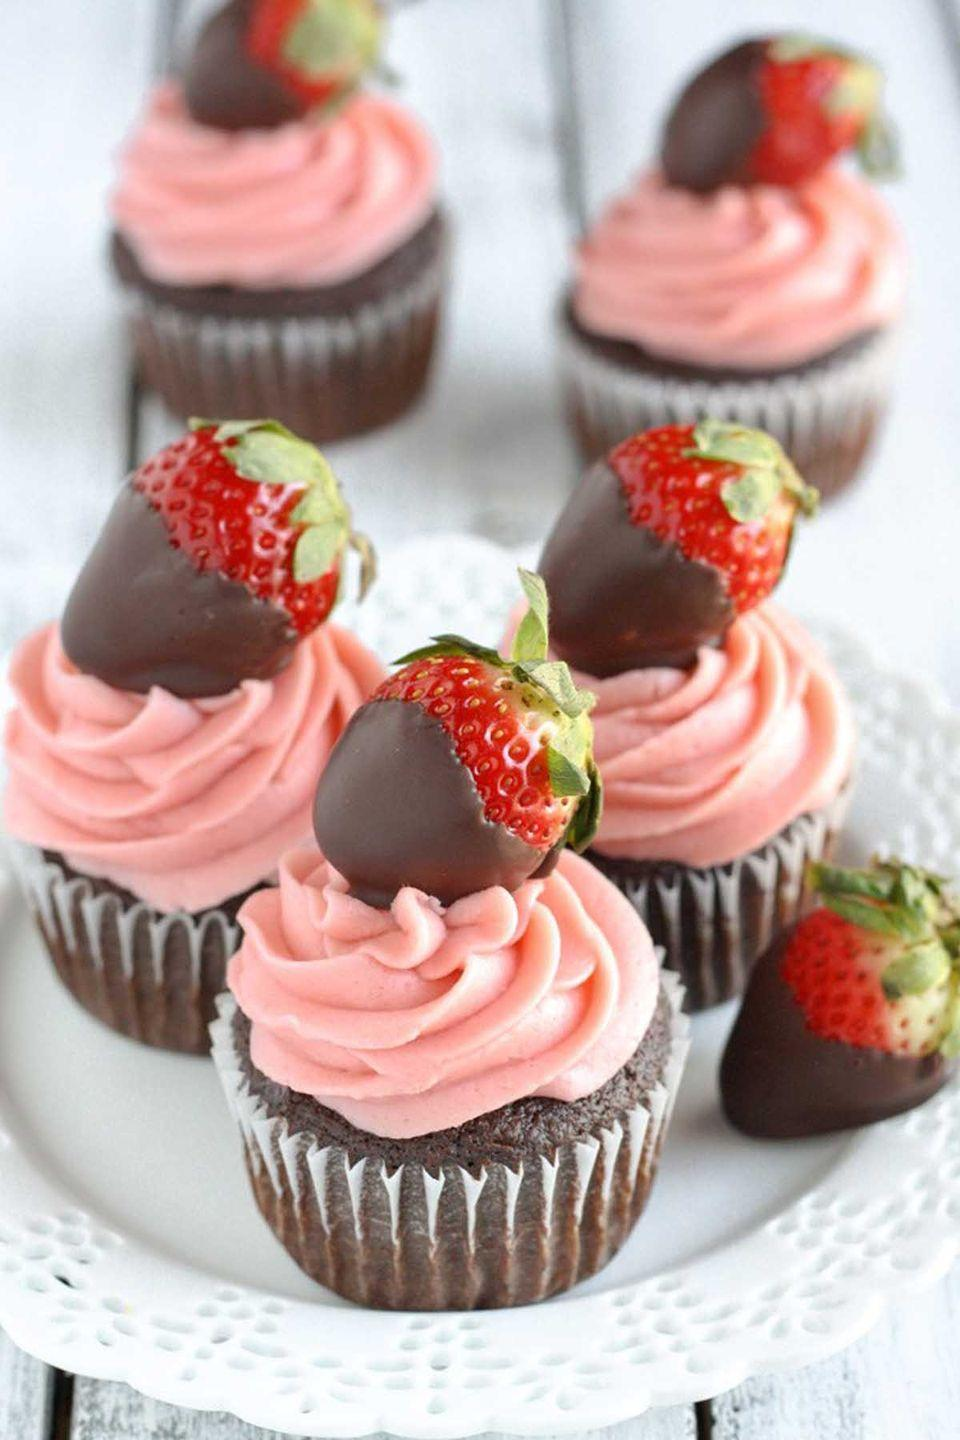 "<p><span class=""redactor-invisible-space"">Add the chocolate covered strawberries on top if you're feeling super romantic. </span><br></p><p><strong>Get the recipe at <a href=""http://www.livewellbakeoften.com/2016/02/01/chocolate-covered-strawberry-cupcakes/"" rel=""nofollow noopener"" target=""_blank"" data-ylk=""slk:Live Well Bake Often"" class=""link rapid-noclick-resp"">Live Well Bake Often</a>. </strong></p>"